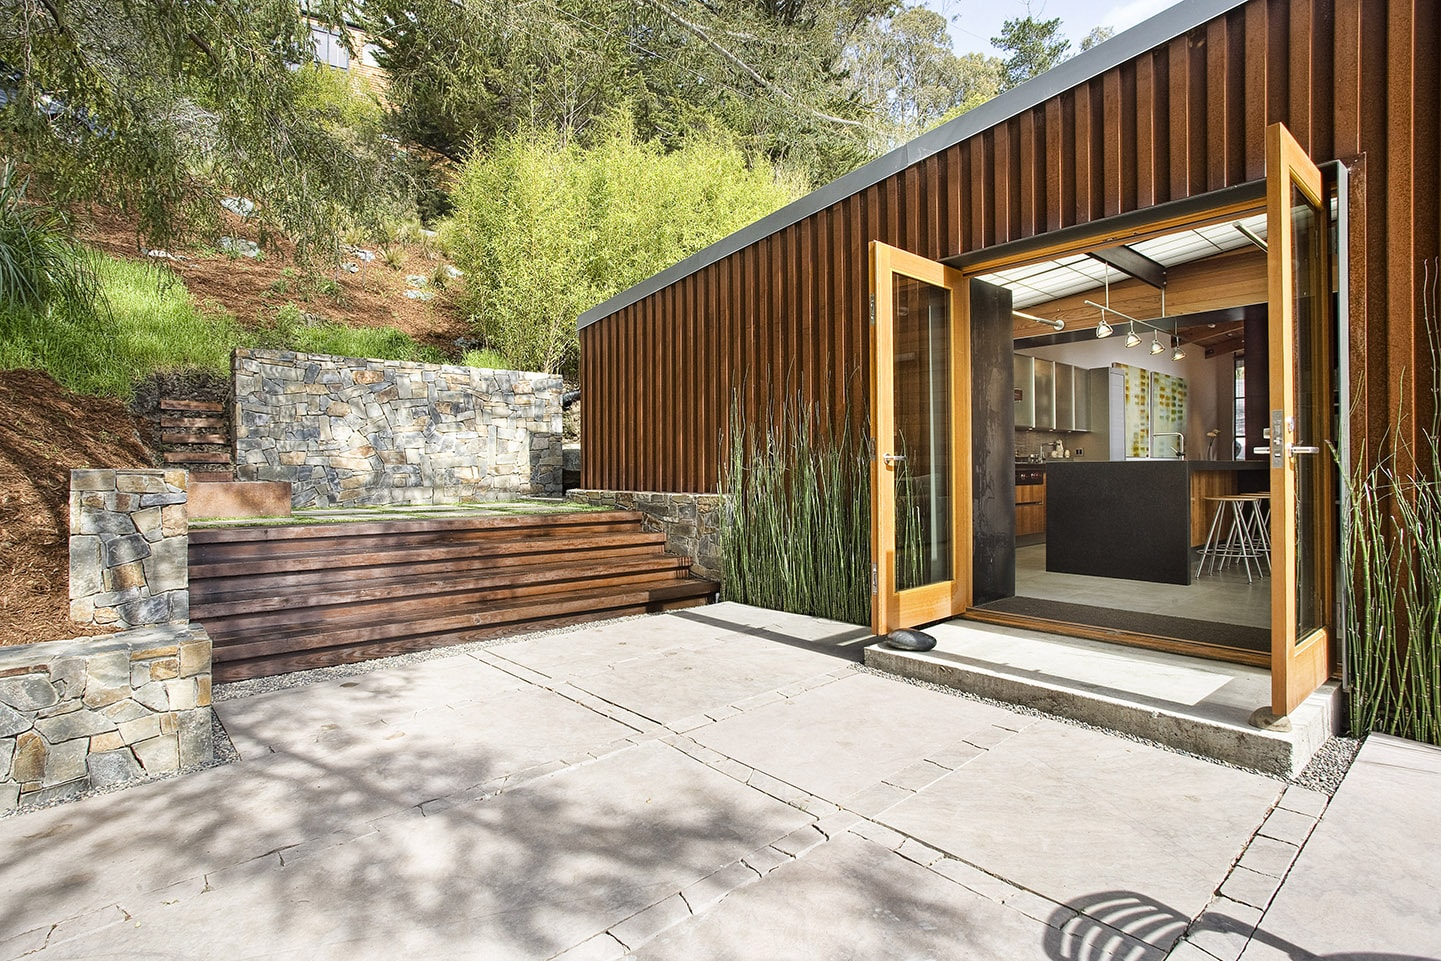 Lovell Residence by Quezada Architecture (Fred Quezada, Cecilia Quezada, Ed Tingley)